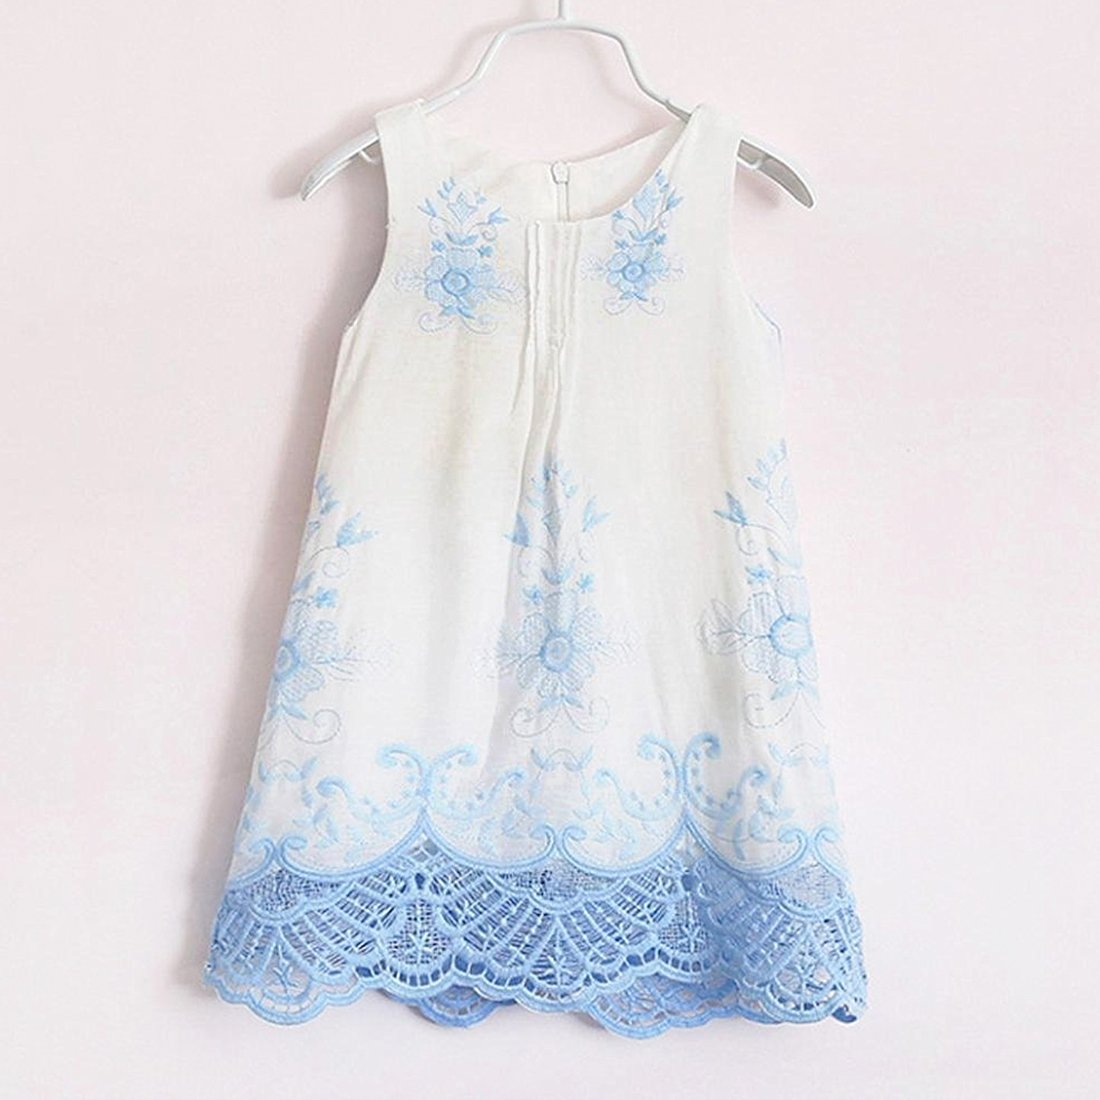 Infant Baby Girl Fashion Summer Dress O-Neck Floral Princess Sleeveless Embroidery Clothes Set